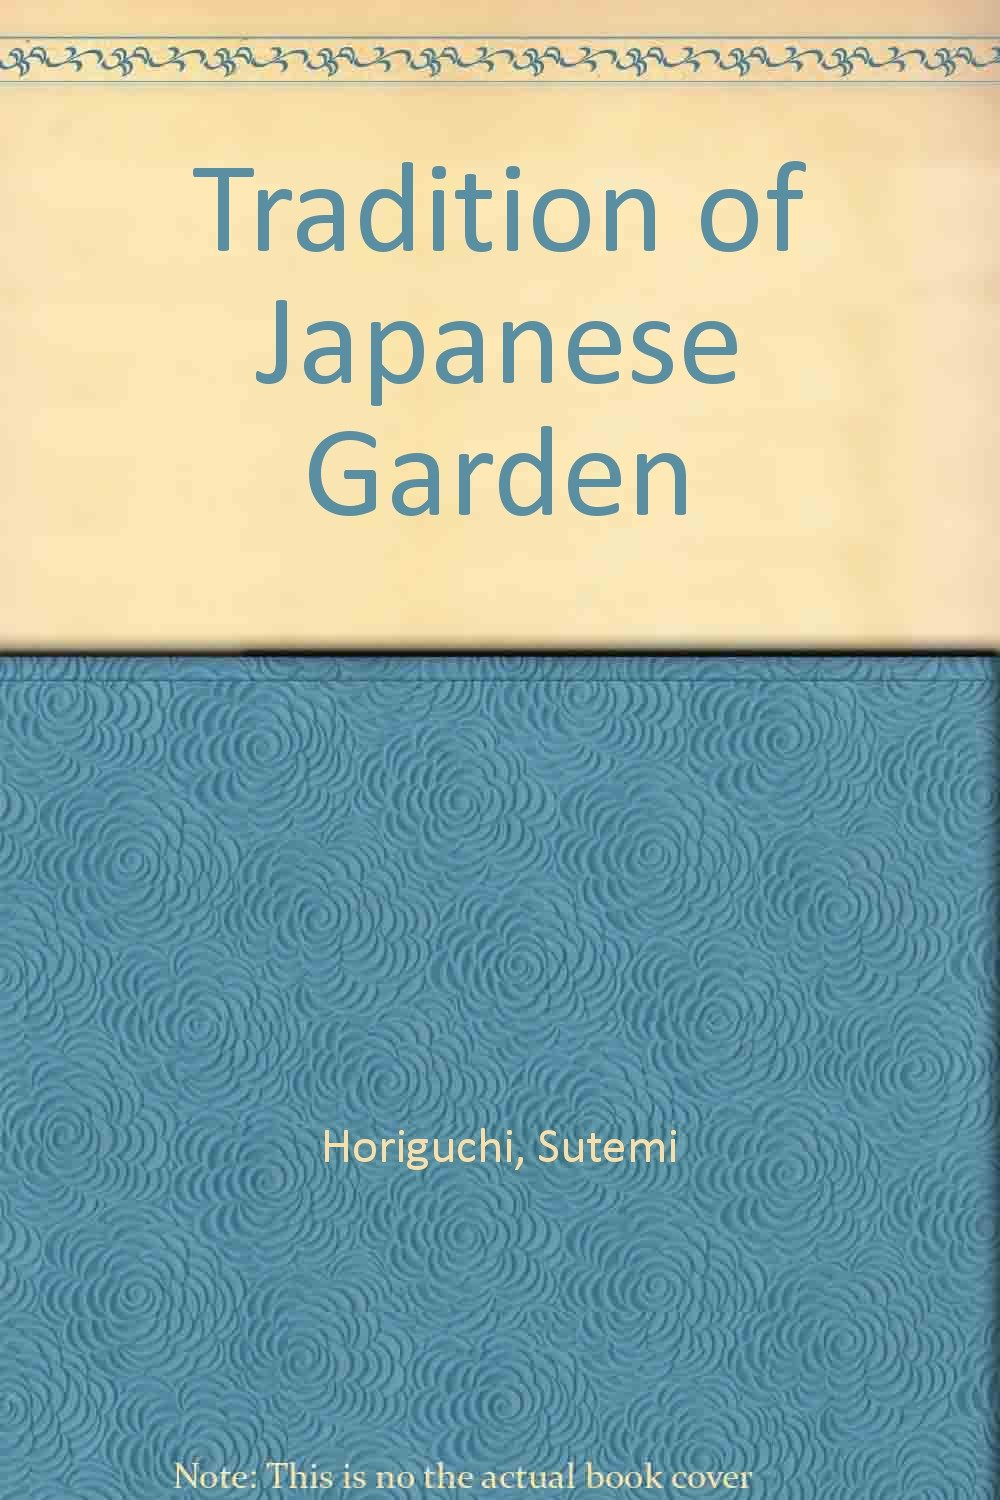 Tradition of Japanese garden